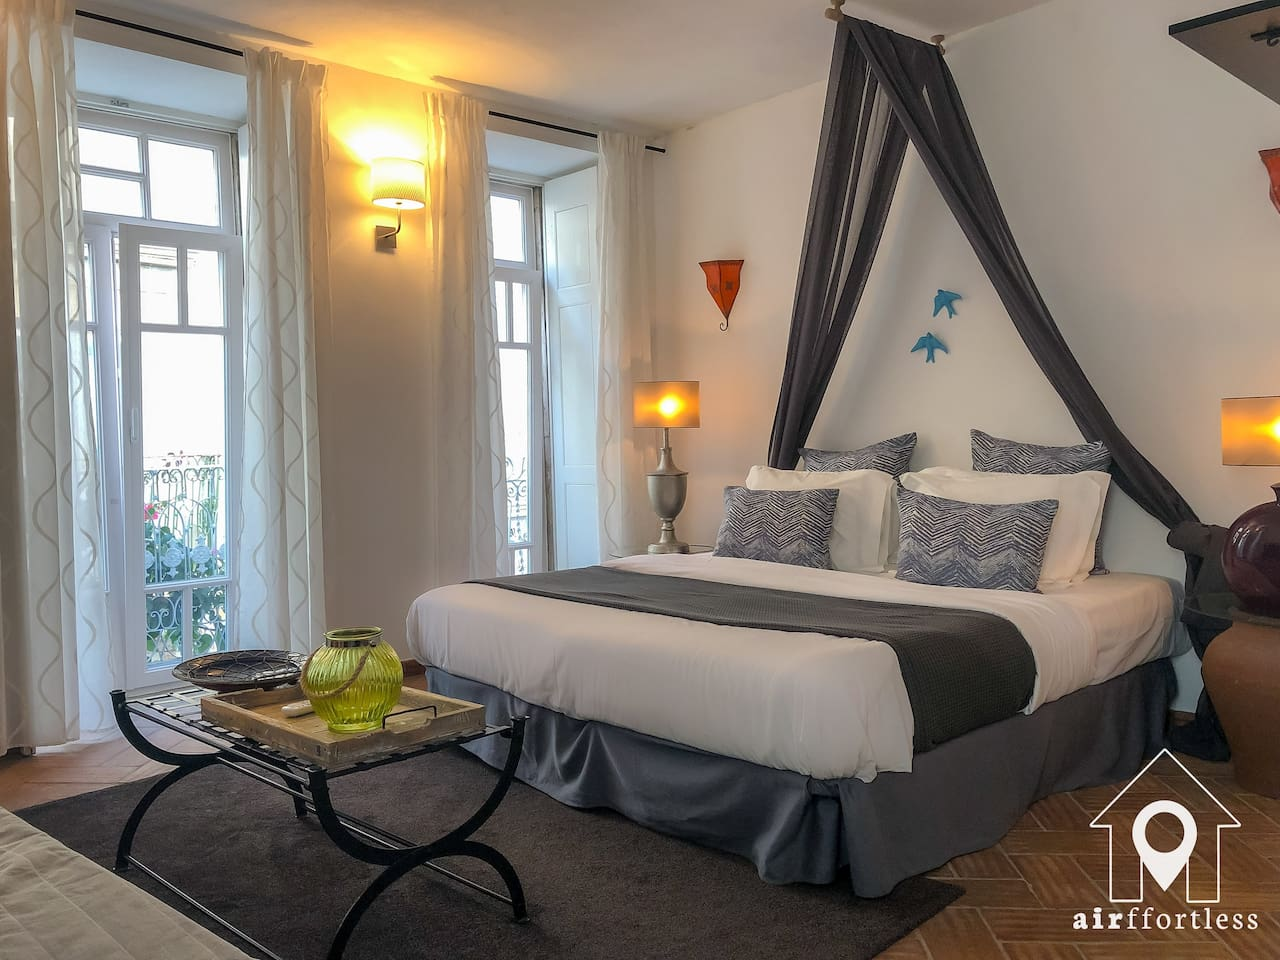 Our First Floor Suite is equipped with a comfortable double bed and a sofa bed with space for 2 additional guests